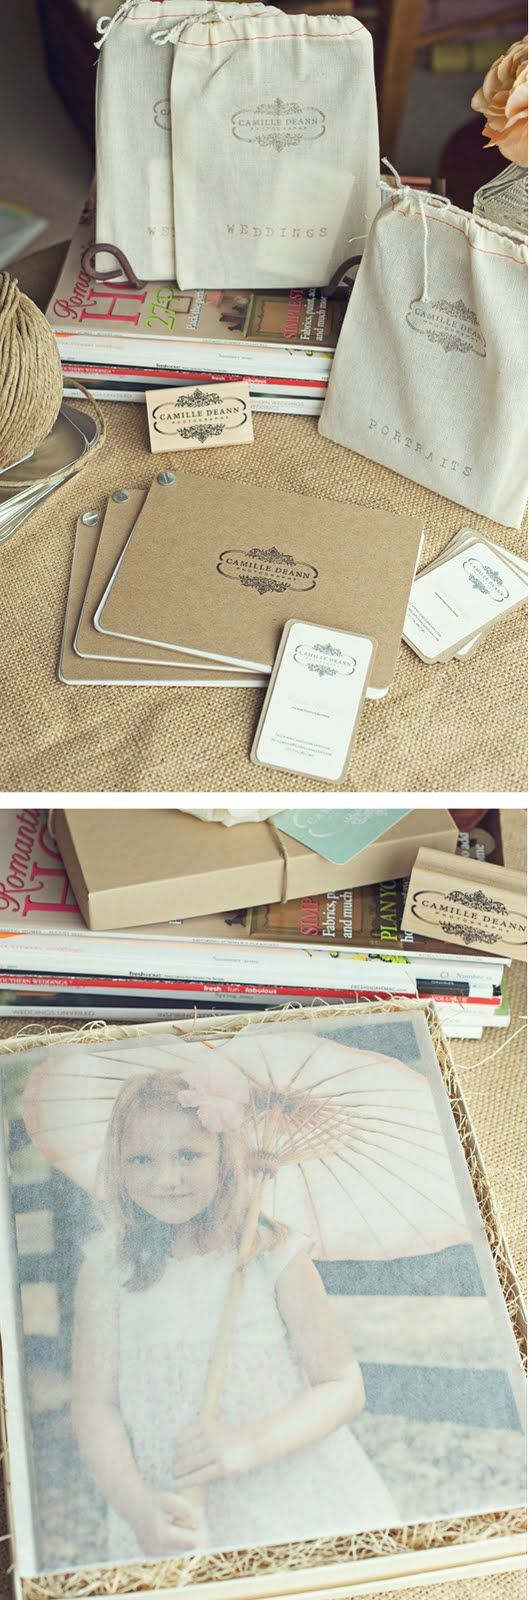 fabulous packaging by Camille Deann Photography